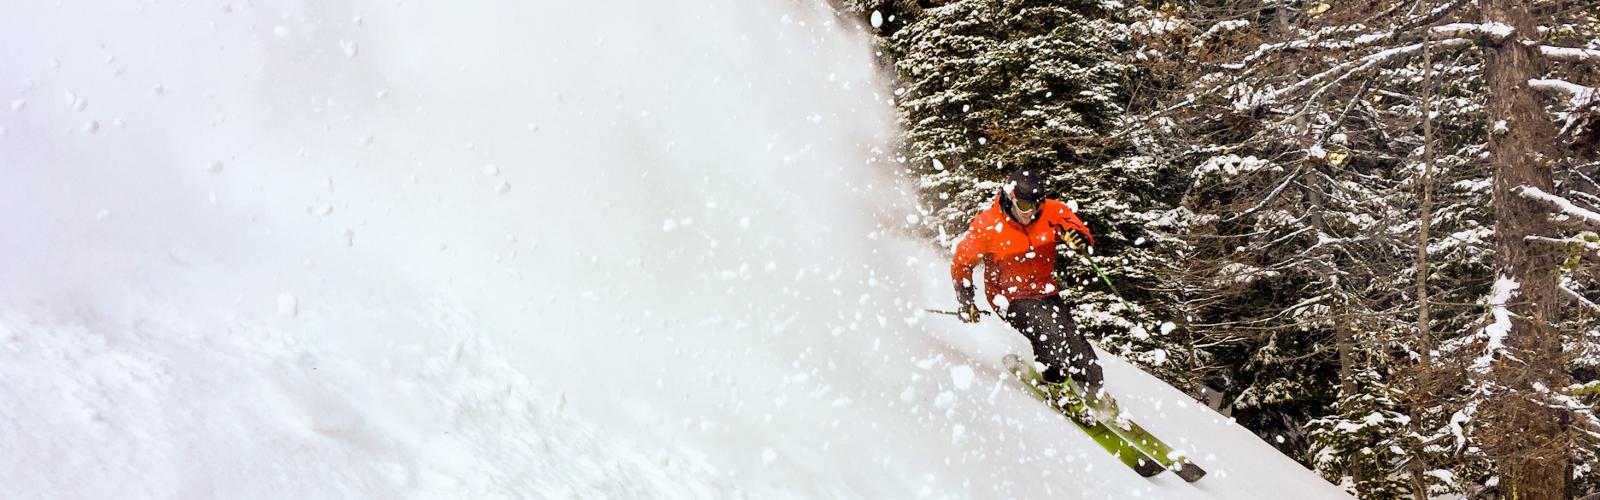 skier escaping his own sluff in front of a big larch